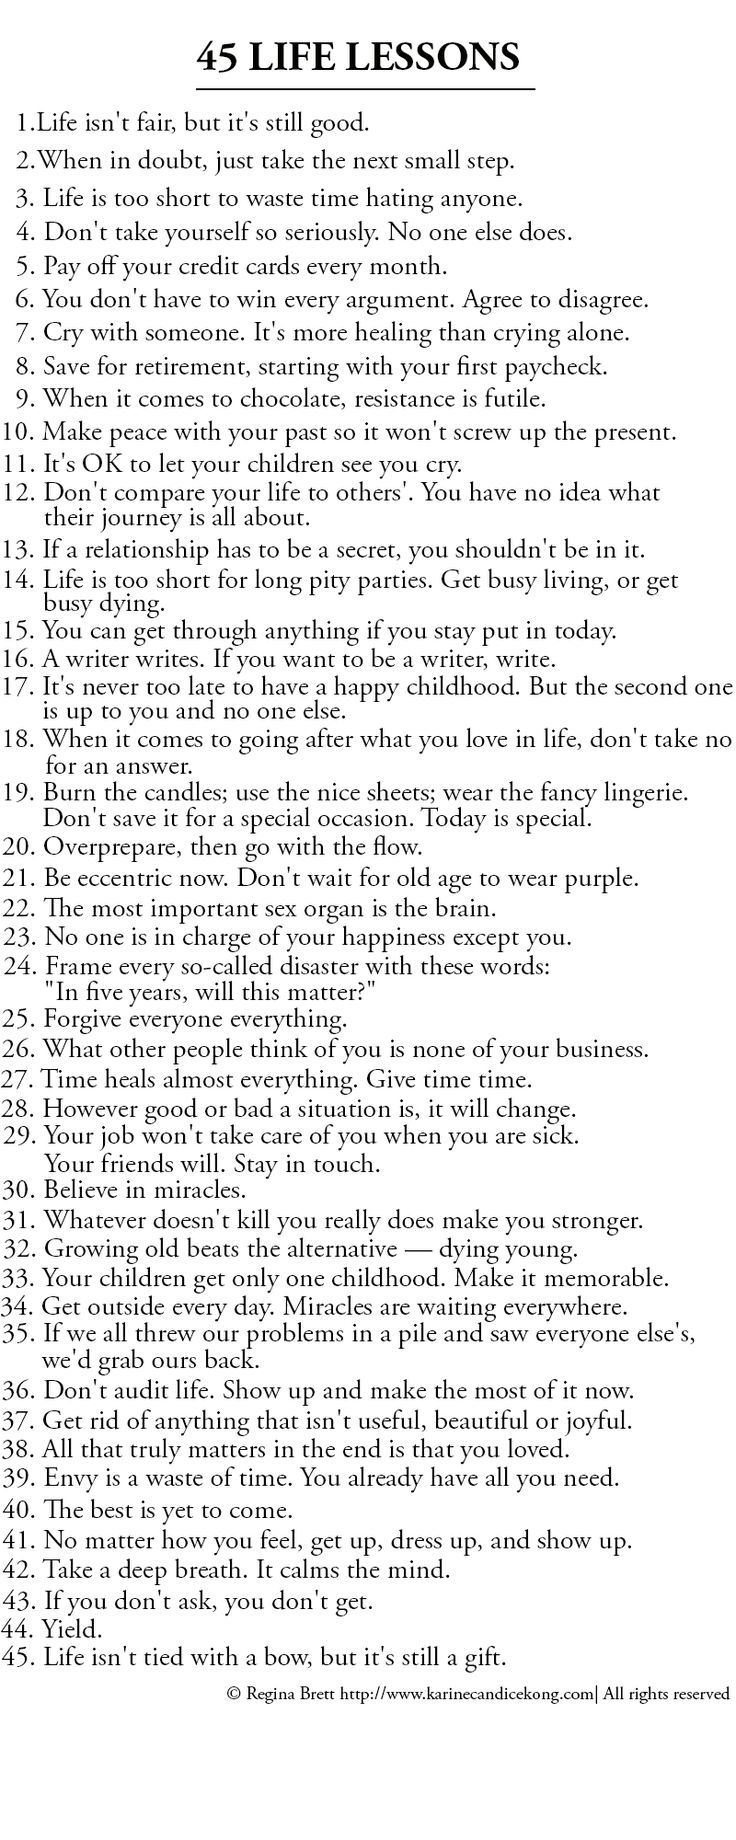 List of 45 Great life lessons to life by.